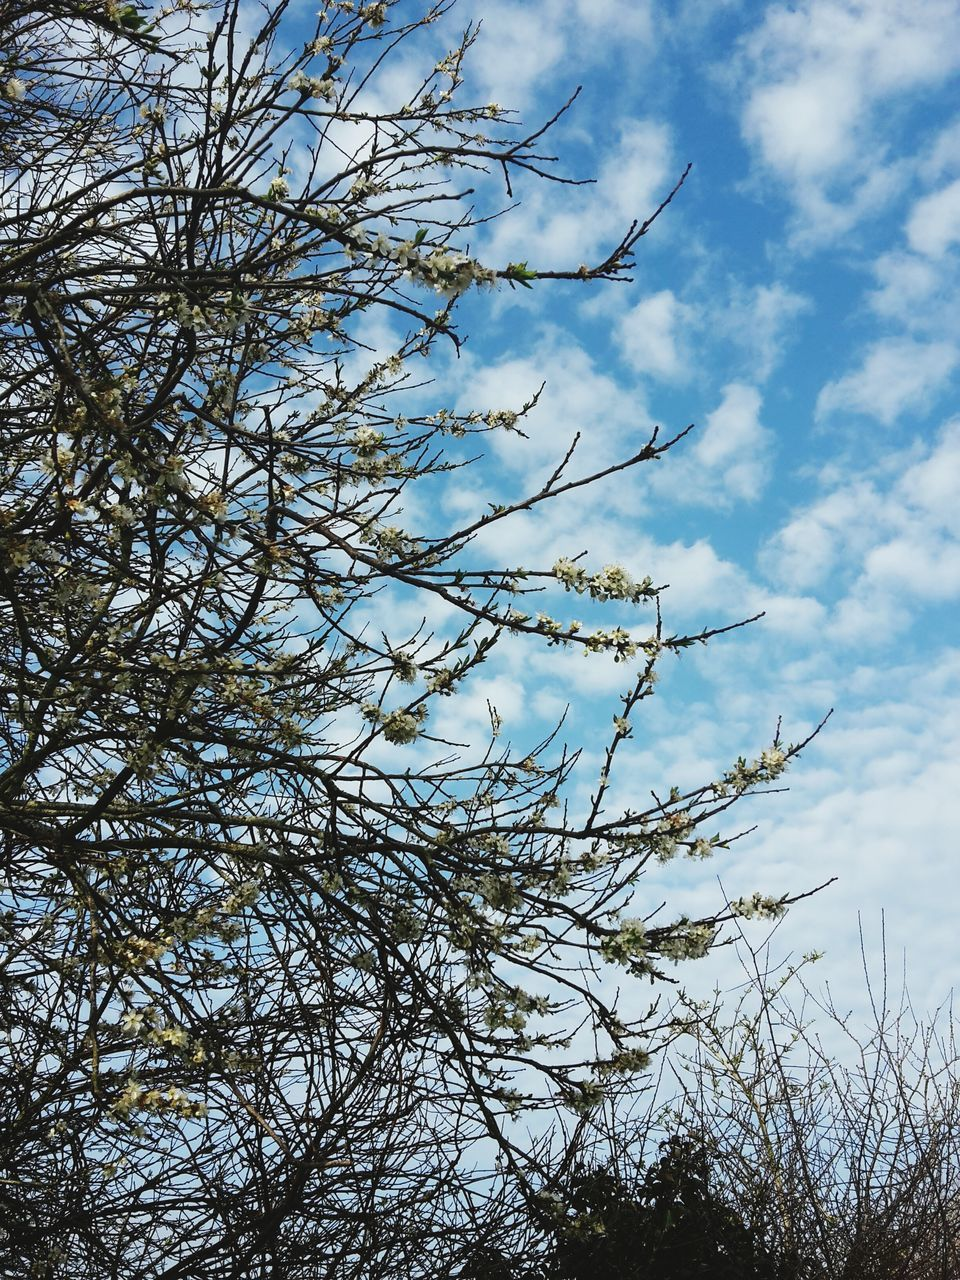 sky, tree, nature, branch, low angle view, day, outdoors, no people, growth, beauty in nature, cloud - sky, plant